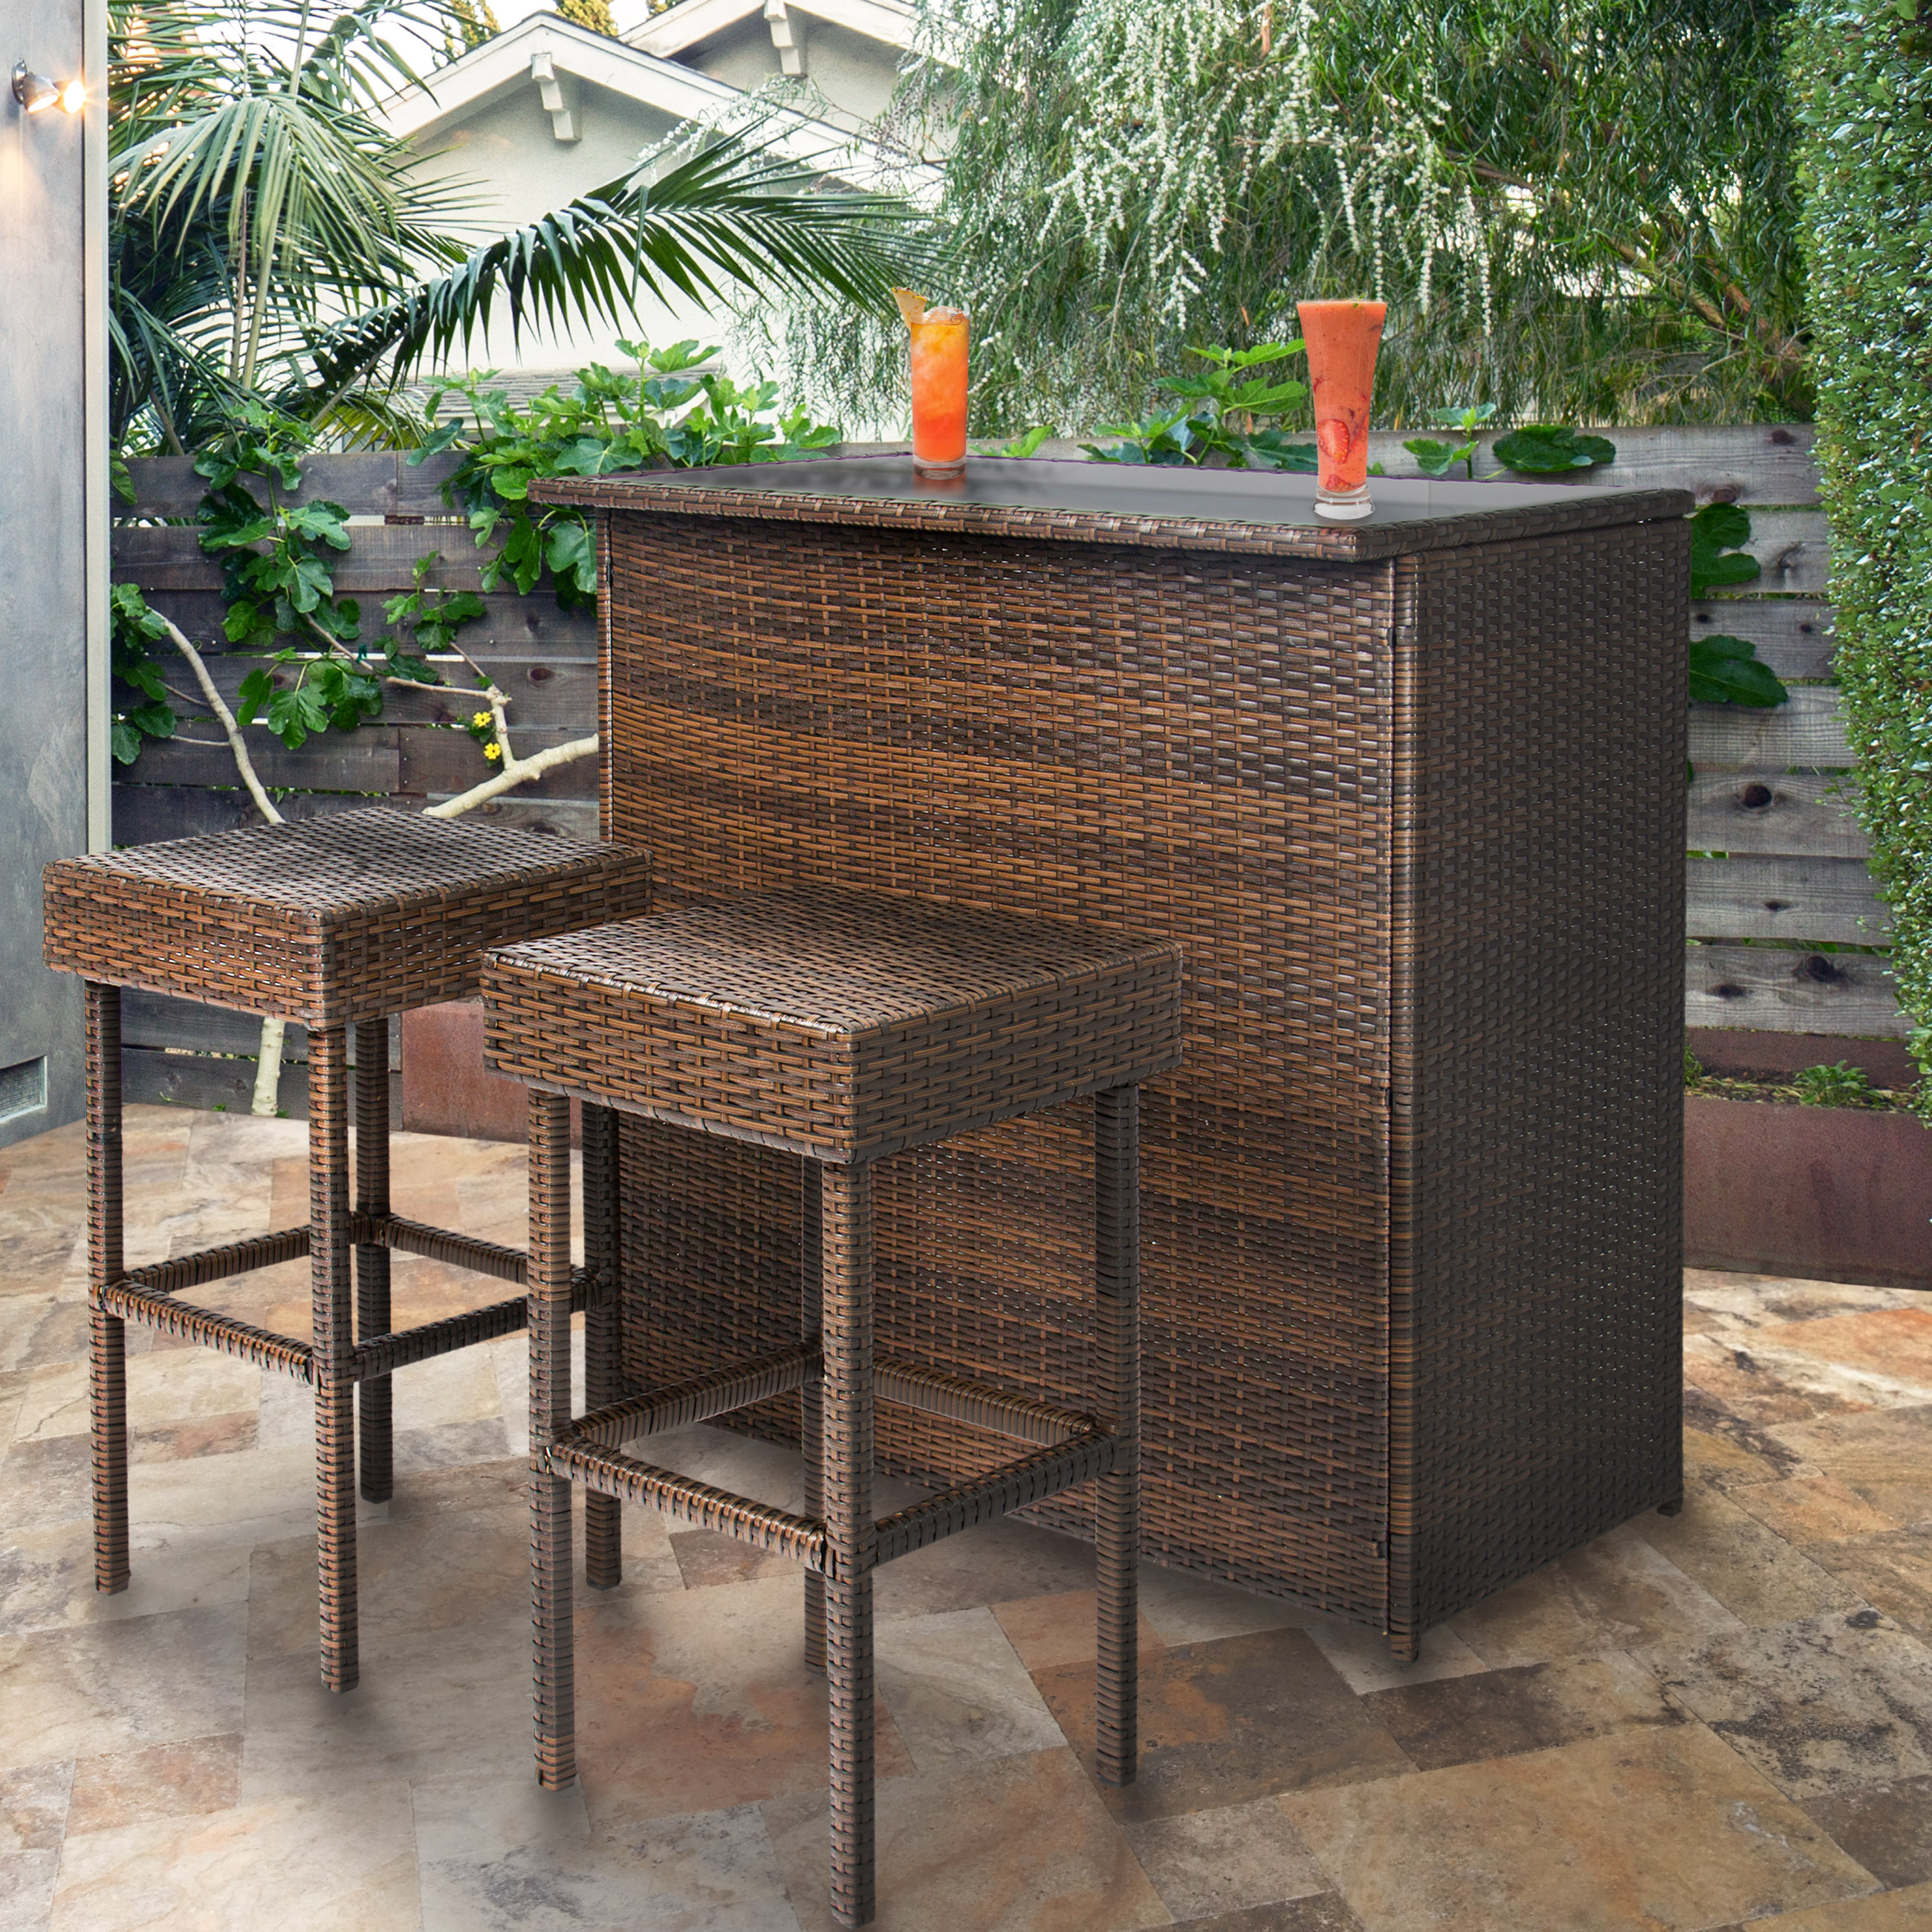 Best Choice Products 3PC Wicker Bar Set Patio Outdoor Backyard Table U0026 2  Stools Rattan Garden Furniture   Walmart.com